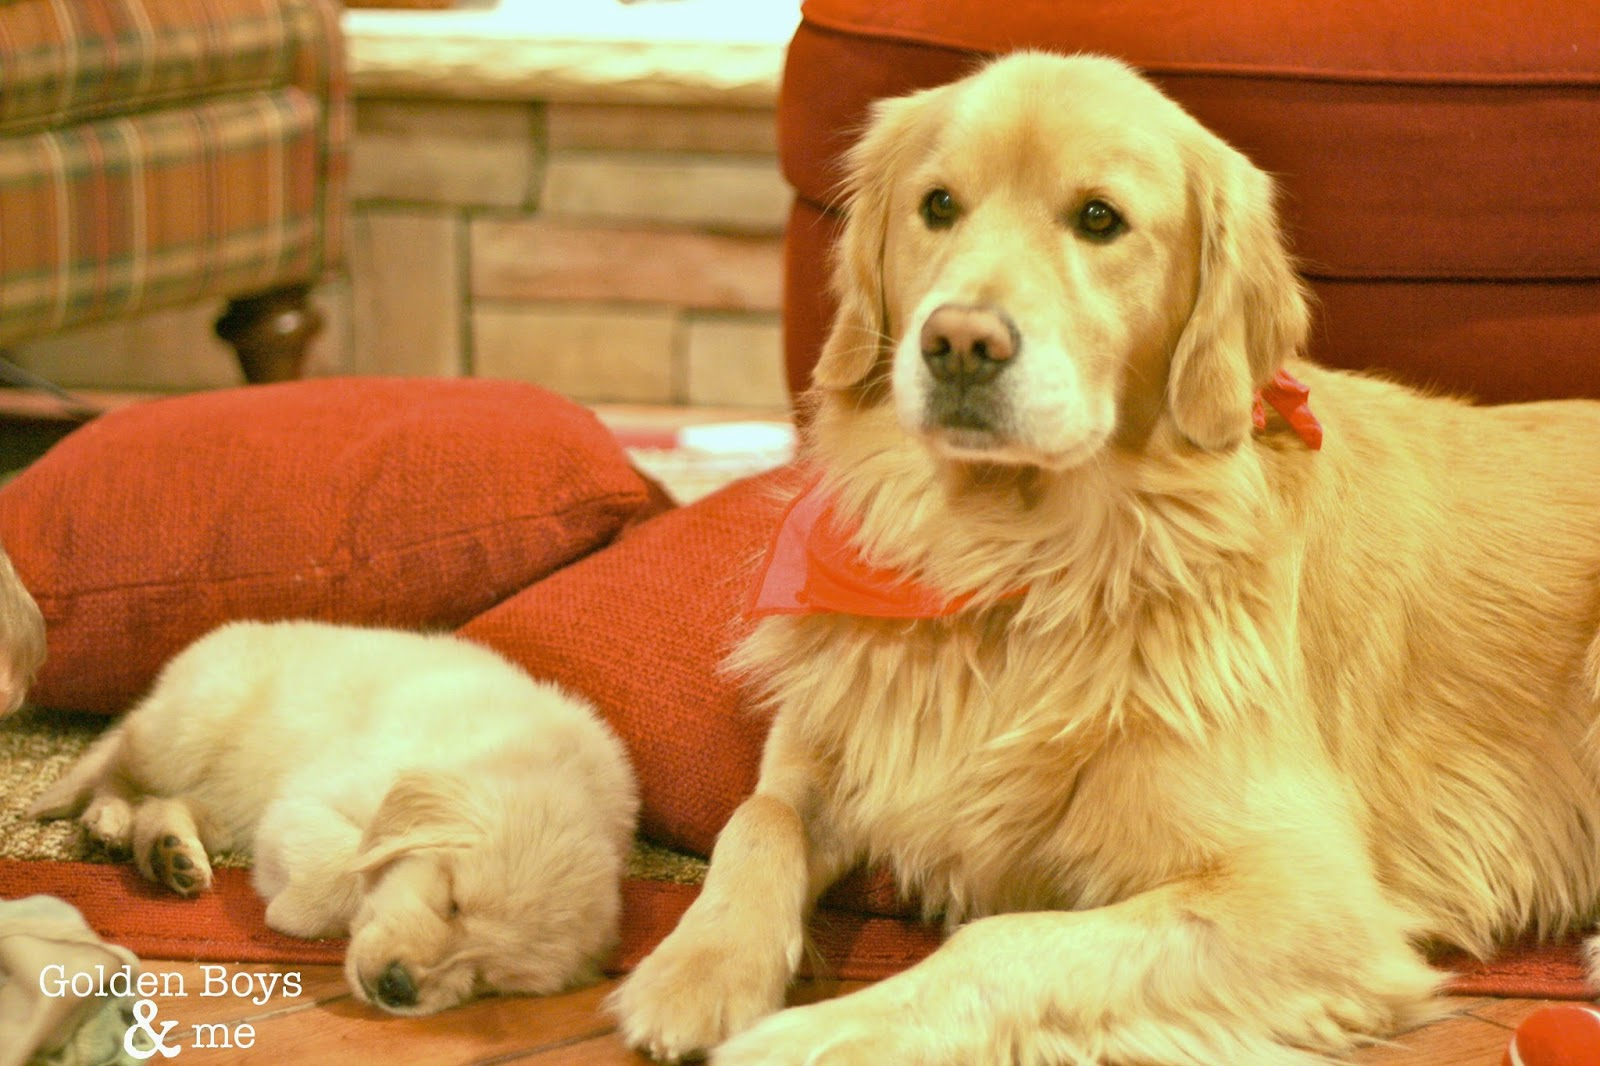 Golden Retriever puppy and adult Golden-www.goldenboysandme.com